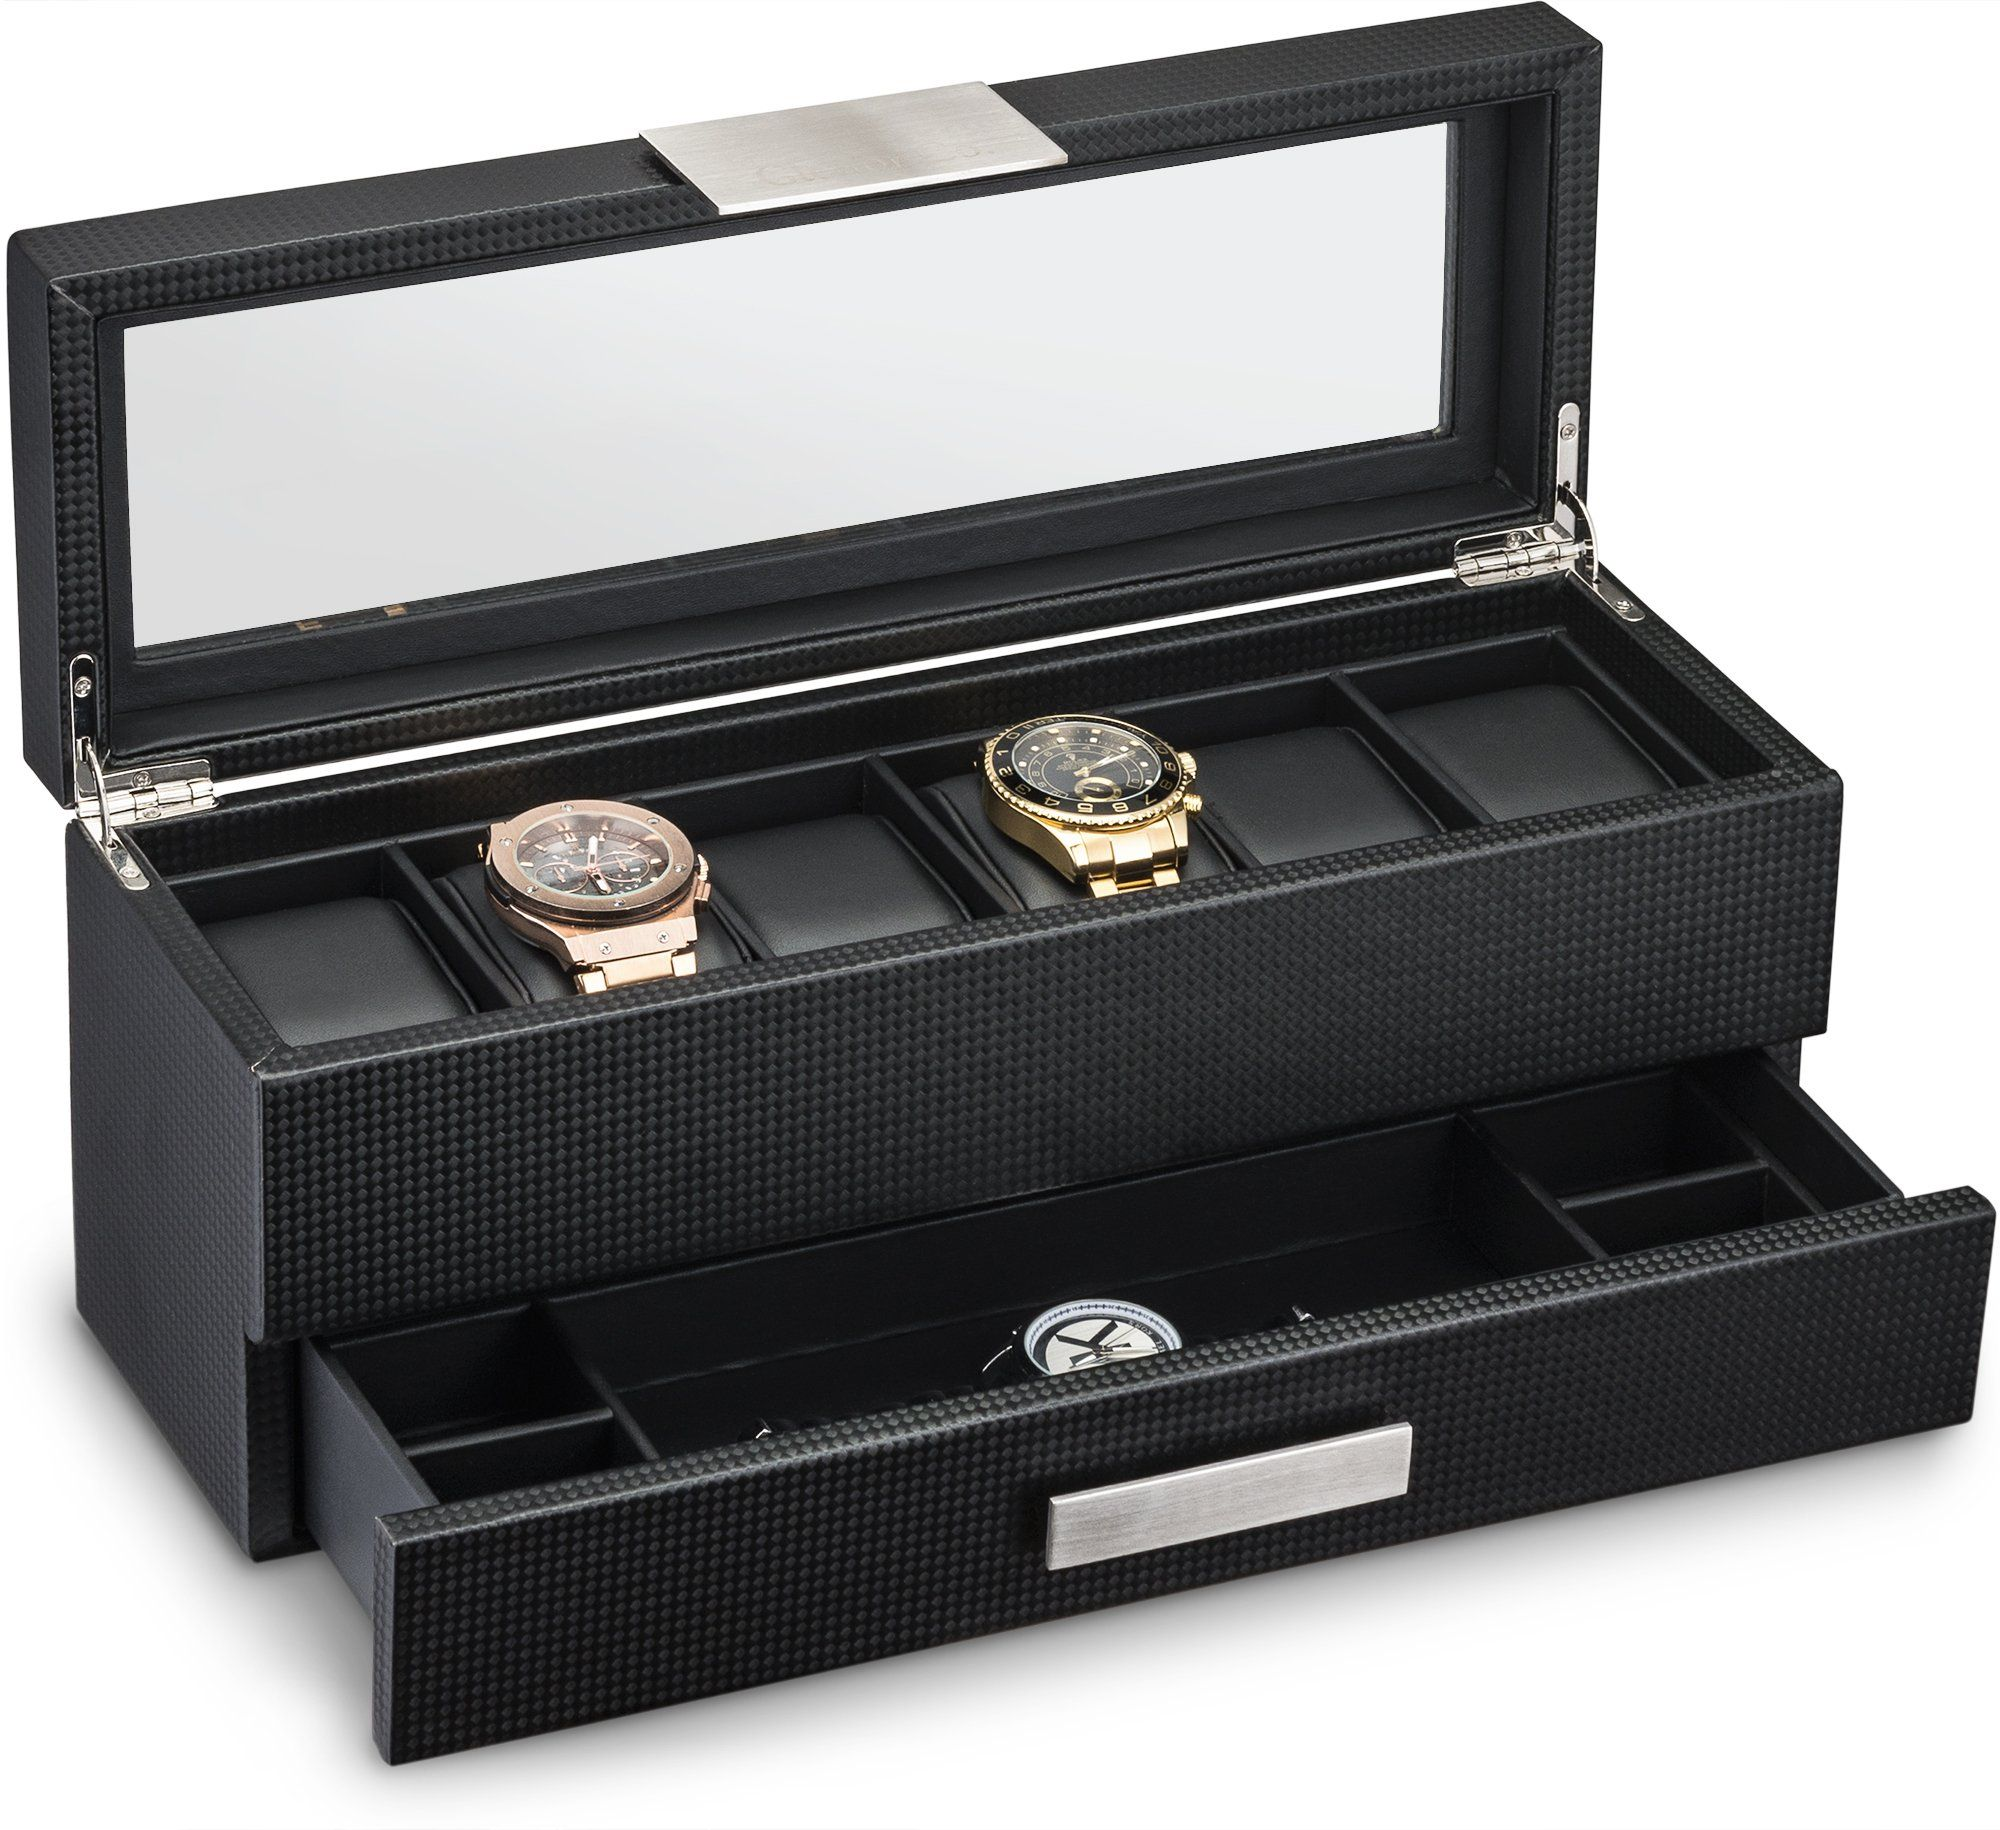 Watch Box With Valet Drawer For Men  6 Slot